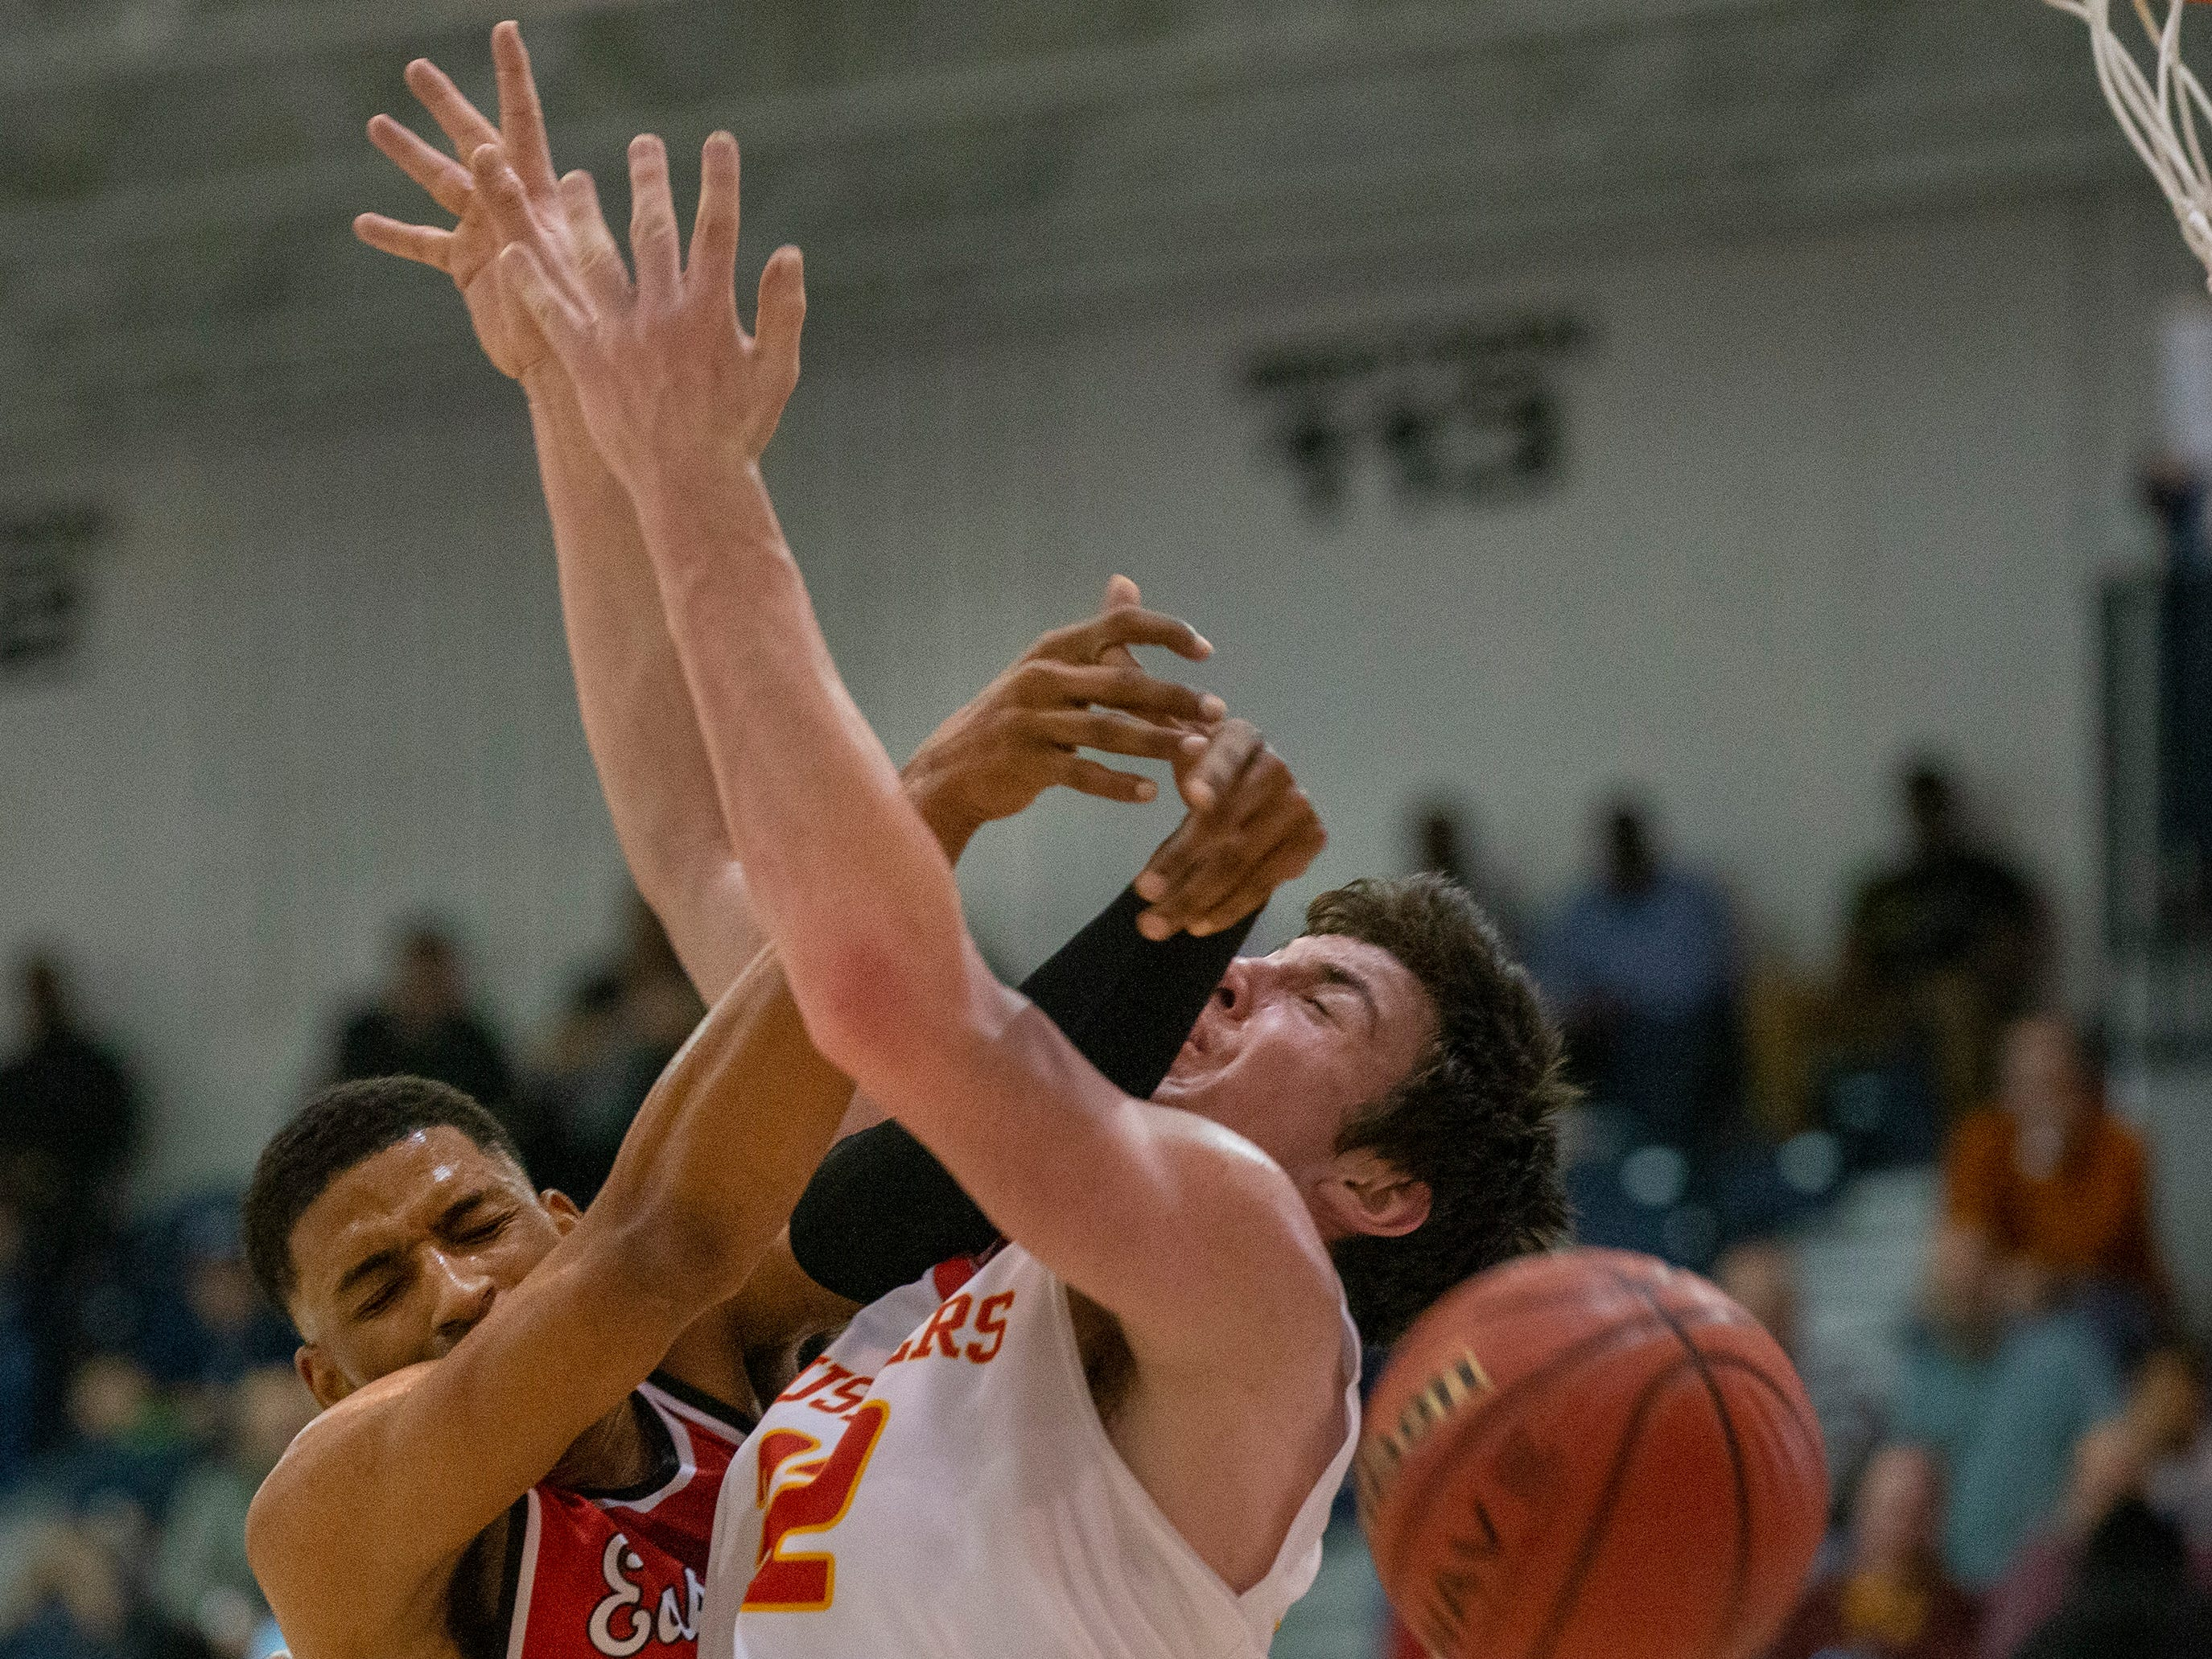 Mikah Johnson, East Side Newark, hits Zachary Freemantle in face during first half action. Bergen Catholic vs. Newark East Side in the 5:30 p.m. semifinals of the 2019 NJSIAA Tournament of Champions in Toms River on March 15, 2019.